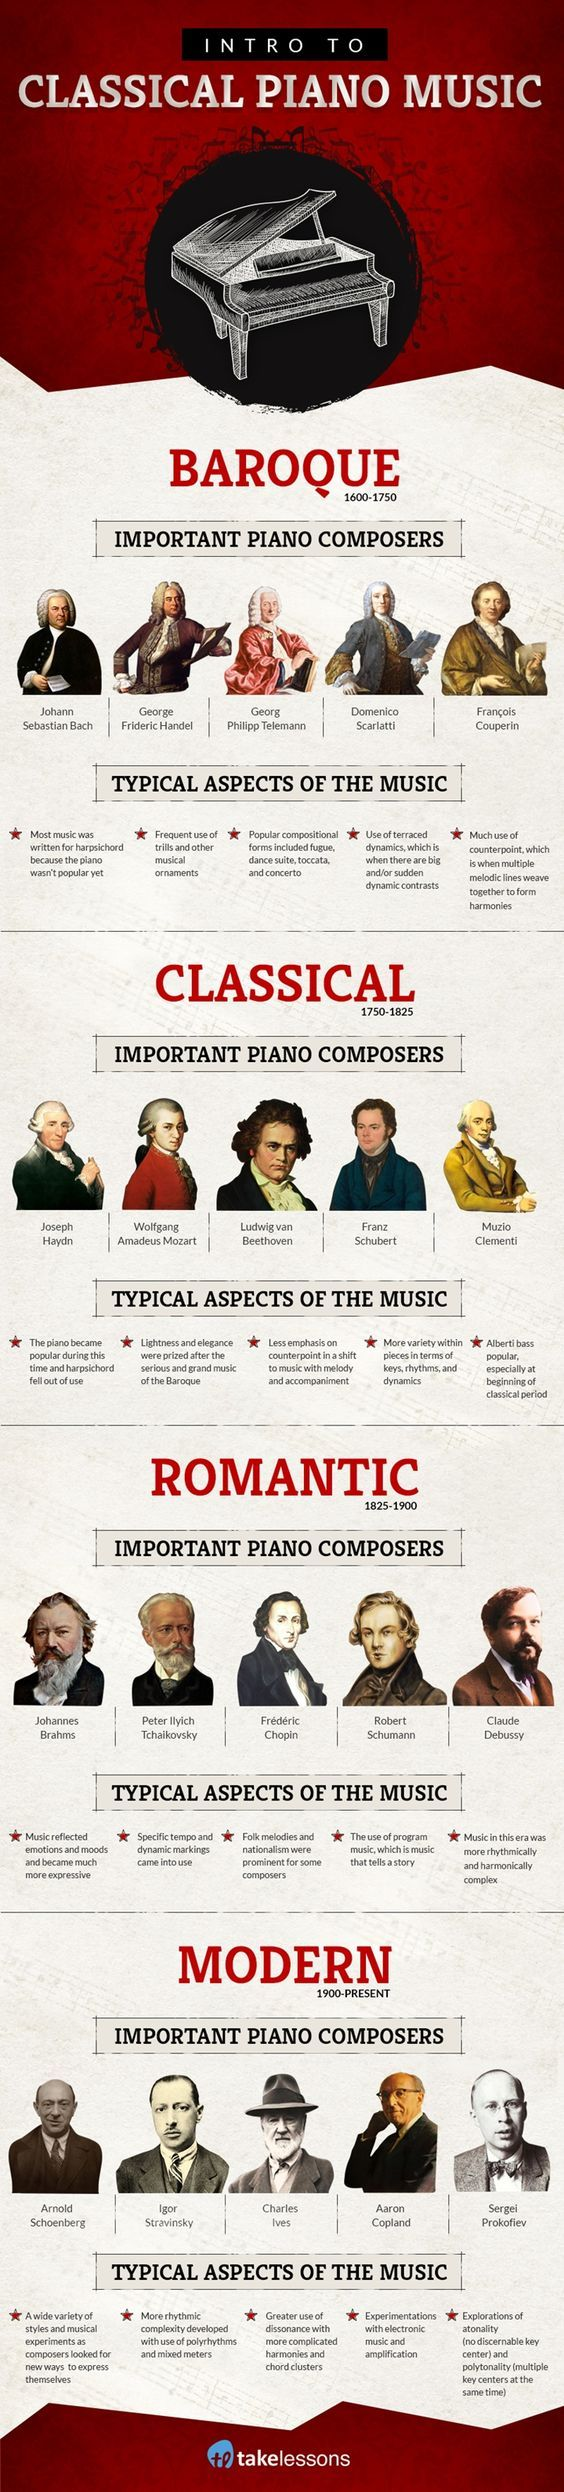 Intro to Classical Piano Music Styles [Infographic] #pianomusic